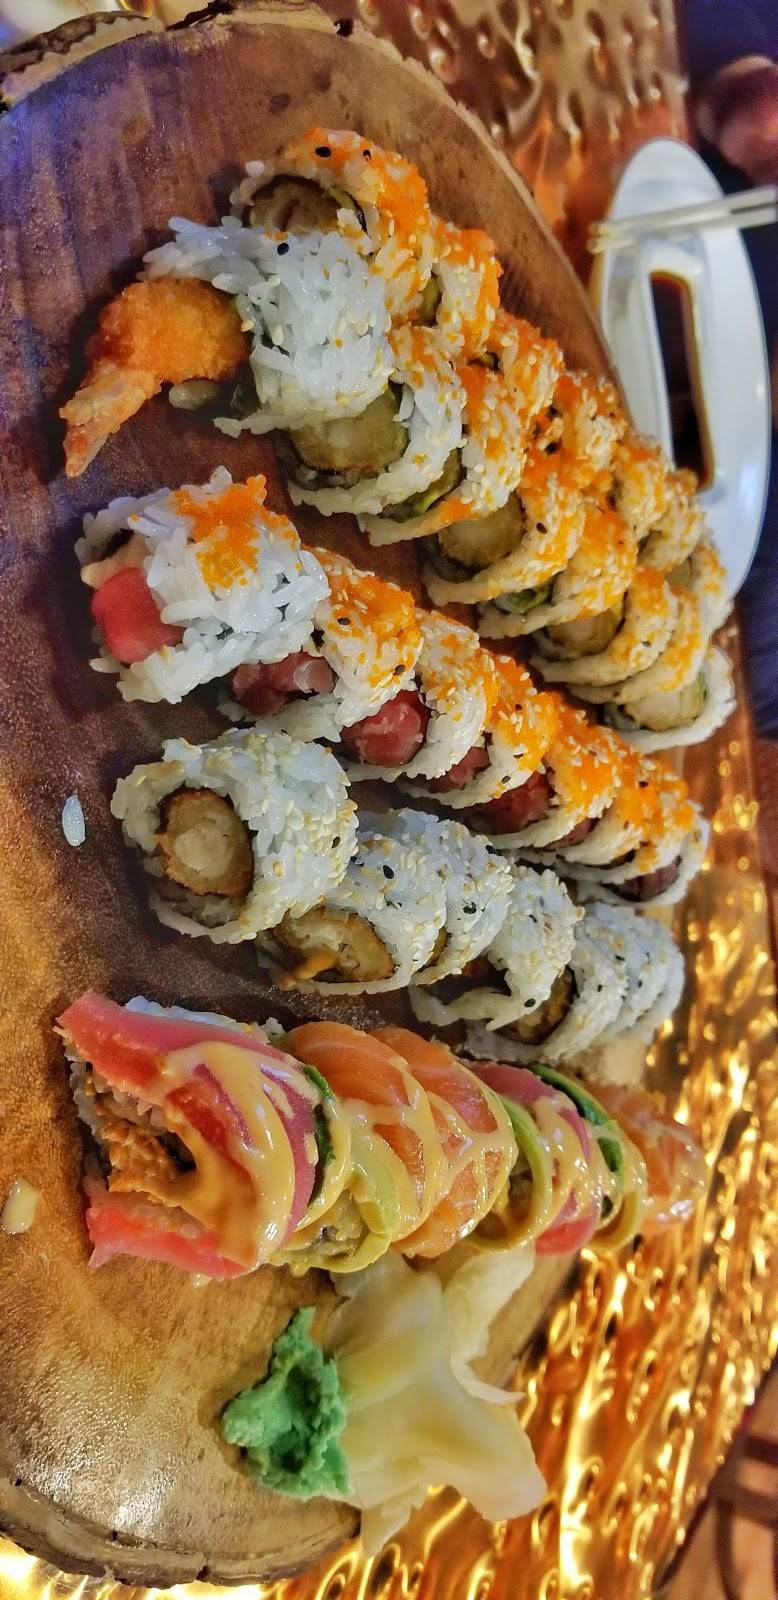 Ocean Blue Asian Fusion, LLC   restaurant   2475 McMullen Booth Rd Ste M, Clearwater, FL 33759, USA   7277916640 OR +1 727-791-6640